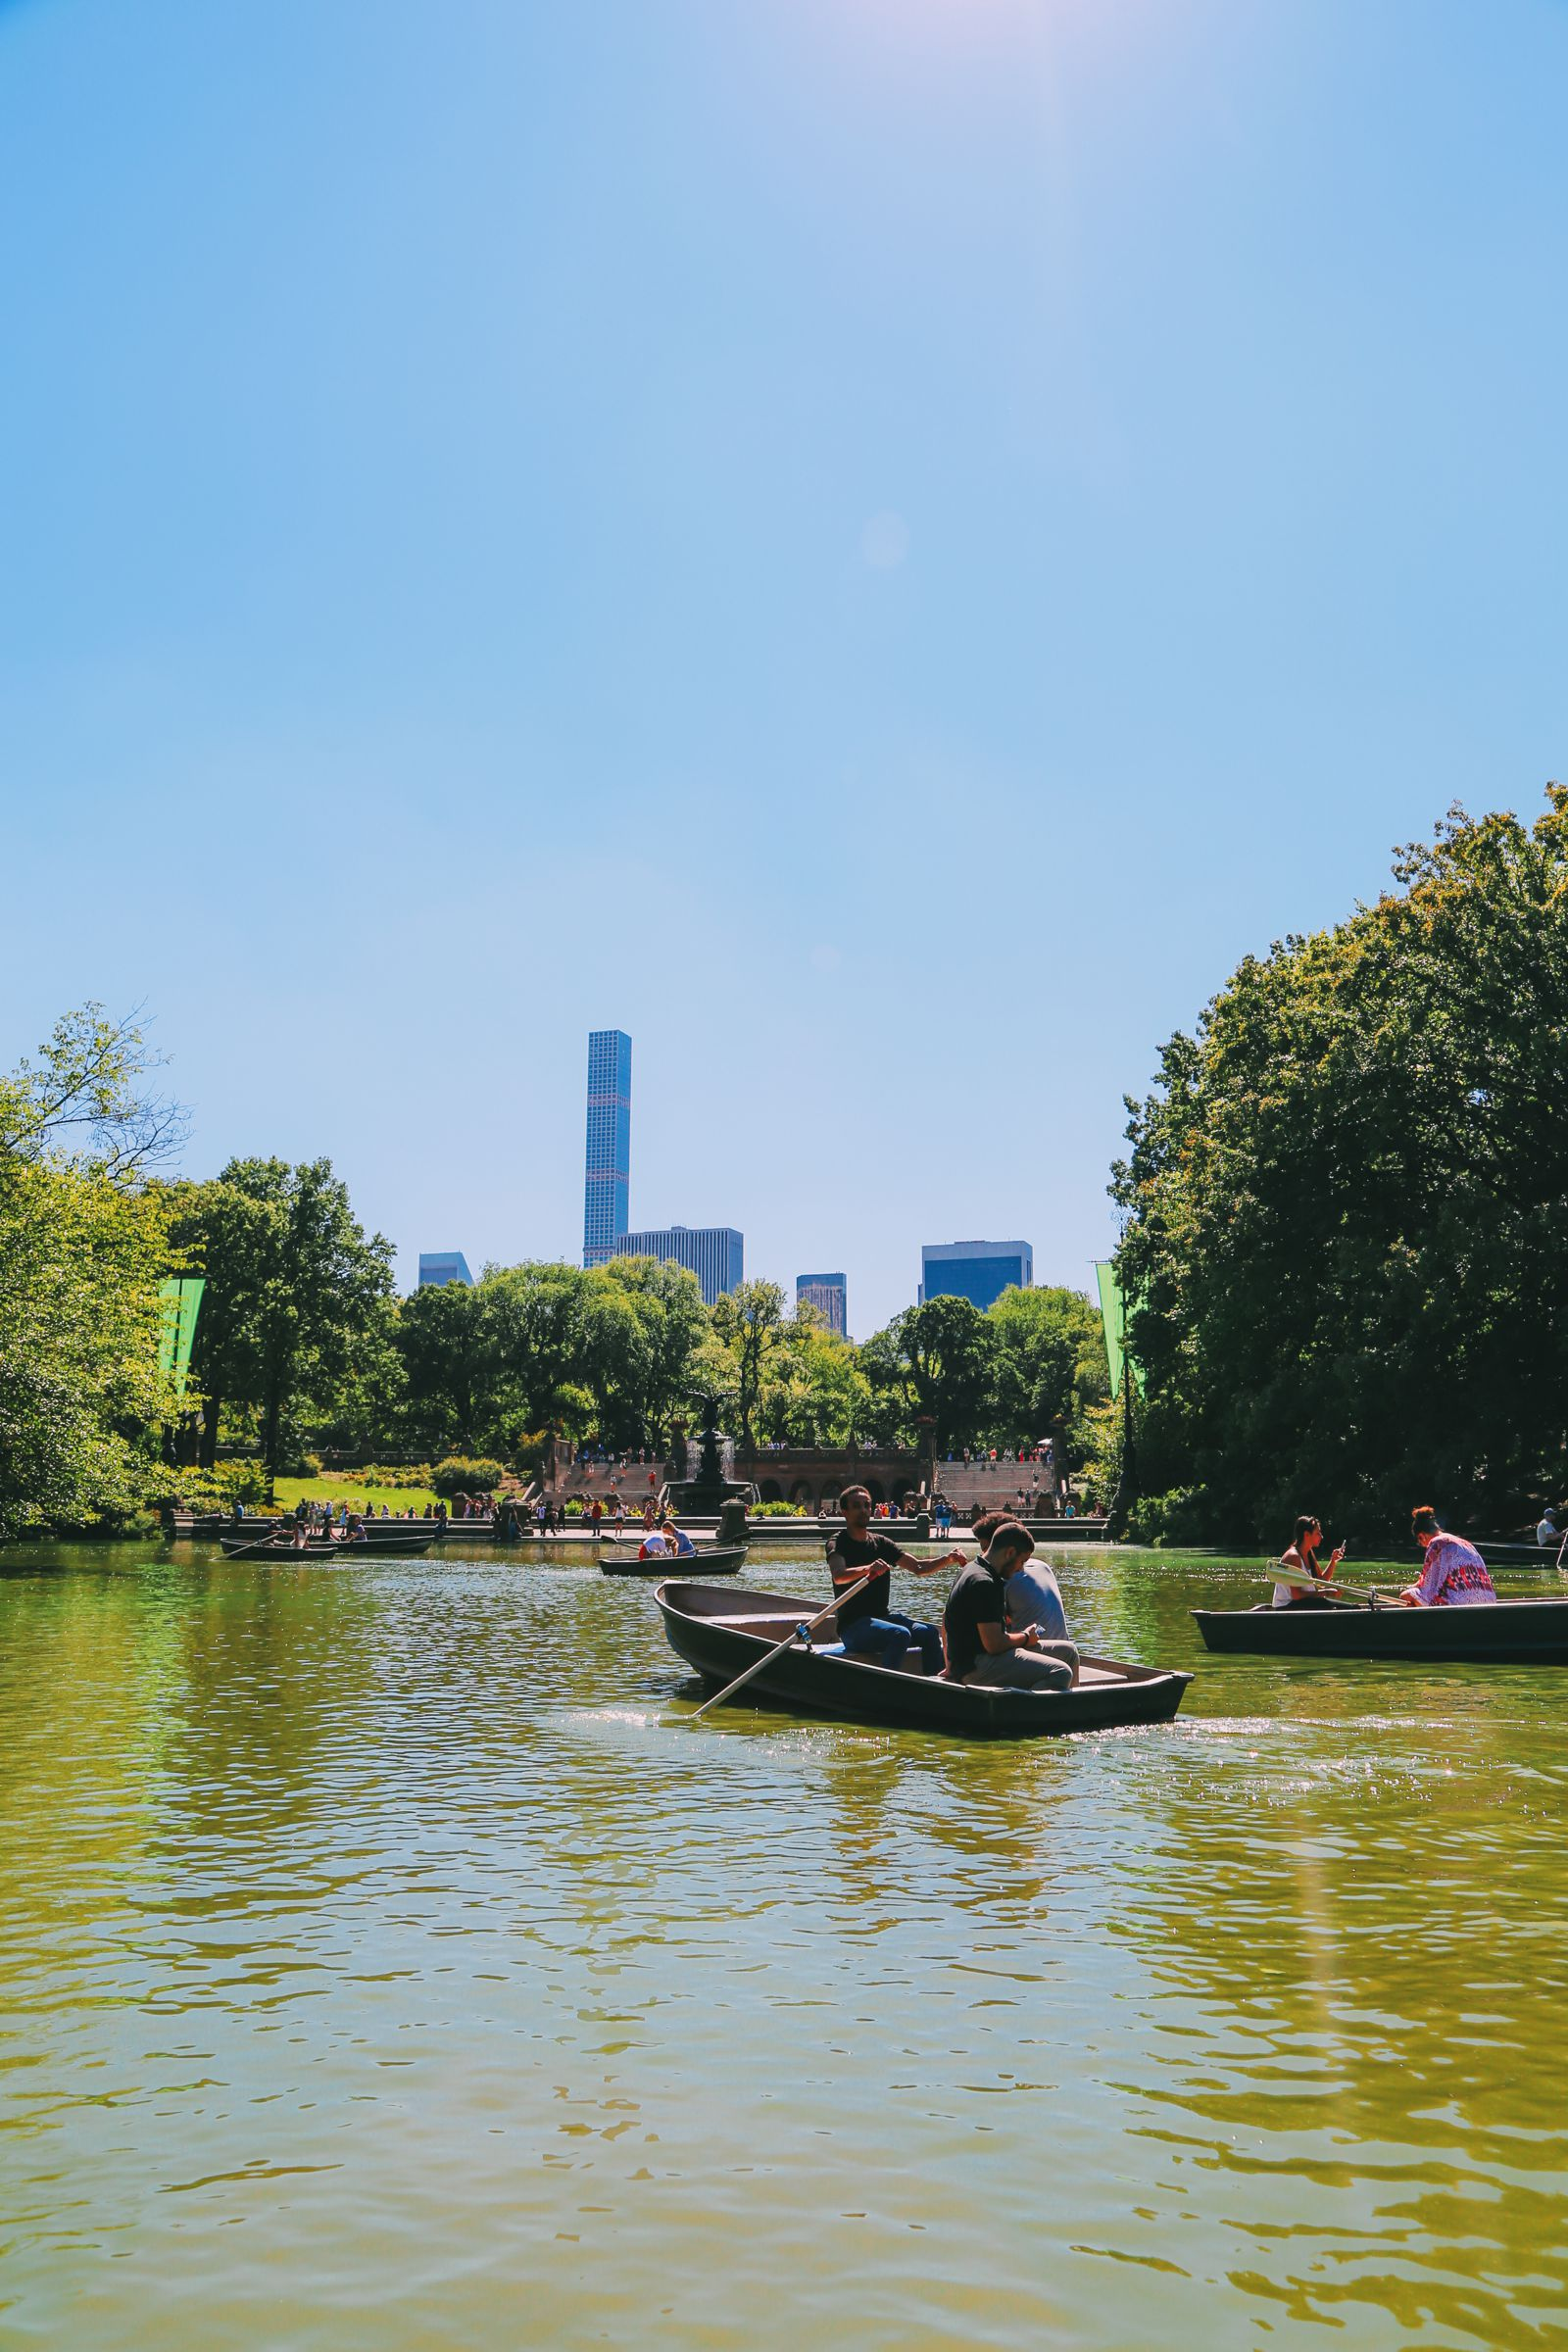 Boating at the Loeb Boathouse in Central Park, New York City (23)